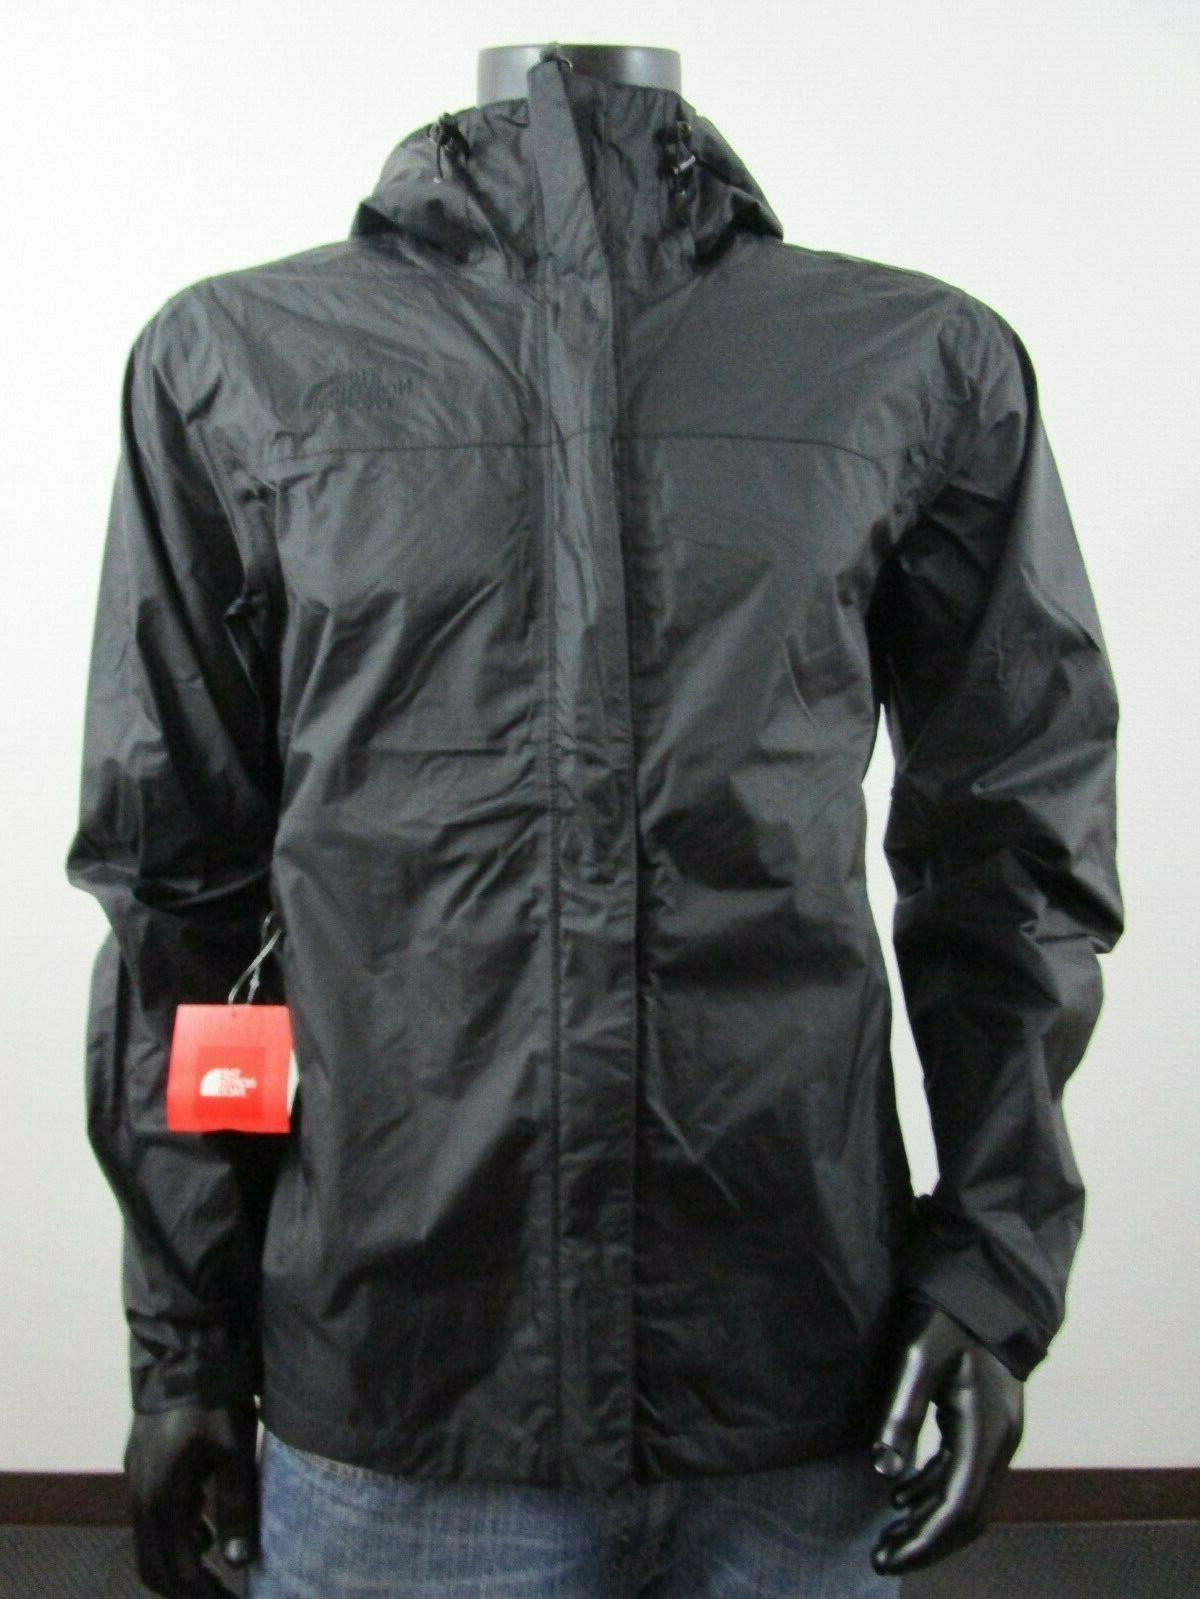 d02b0c6f7 Mens TNF The North Face Venture Dryvent Waterproof Hooded Rain Jacket -  Black